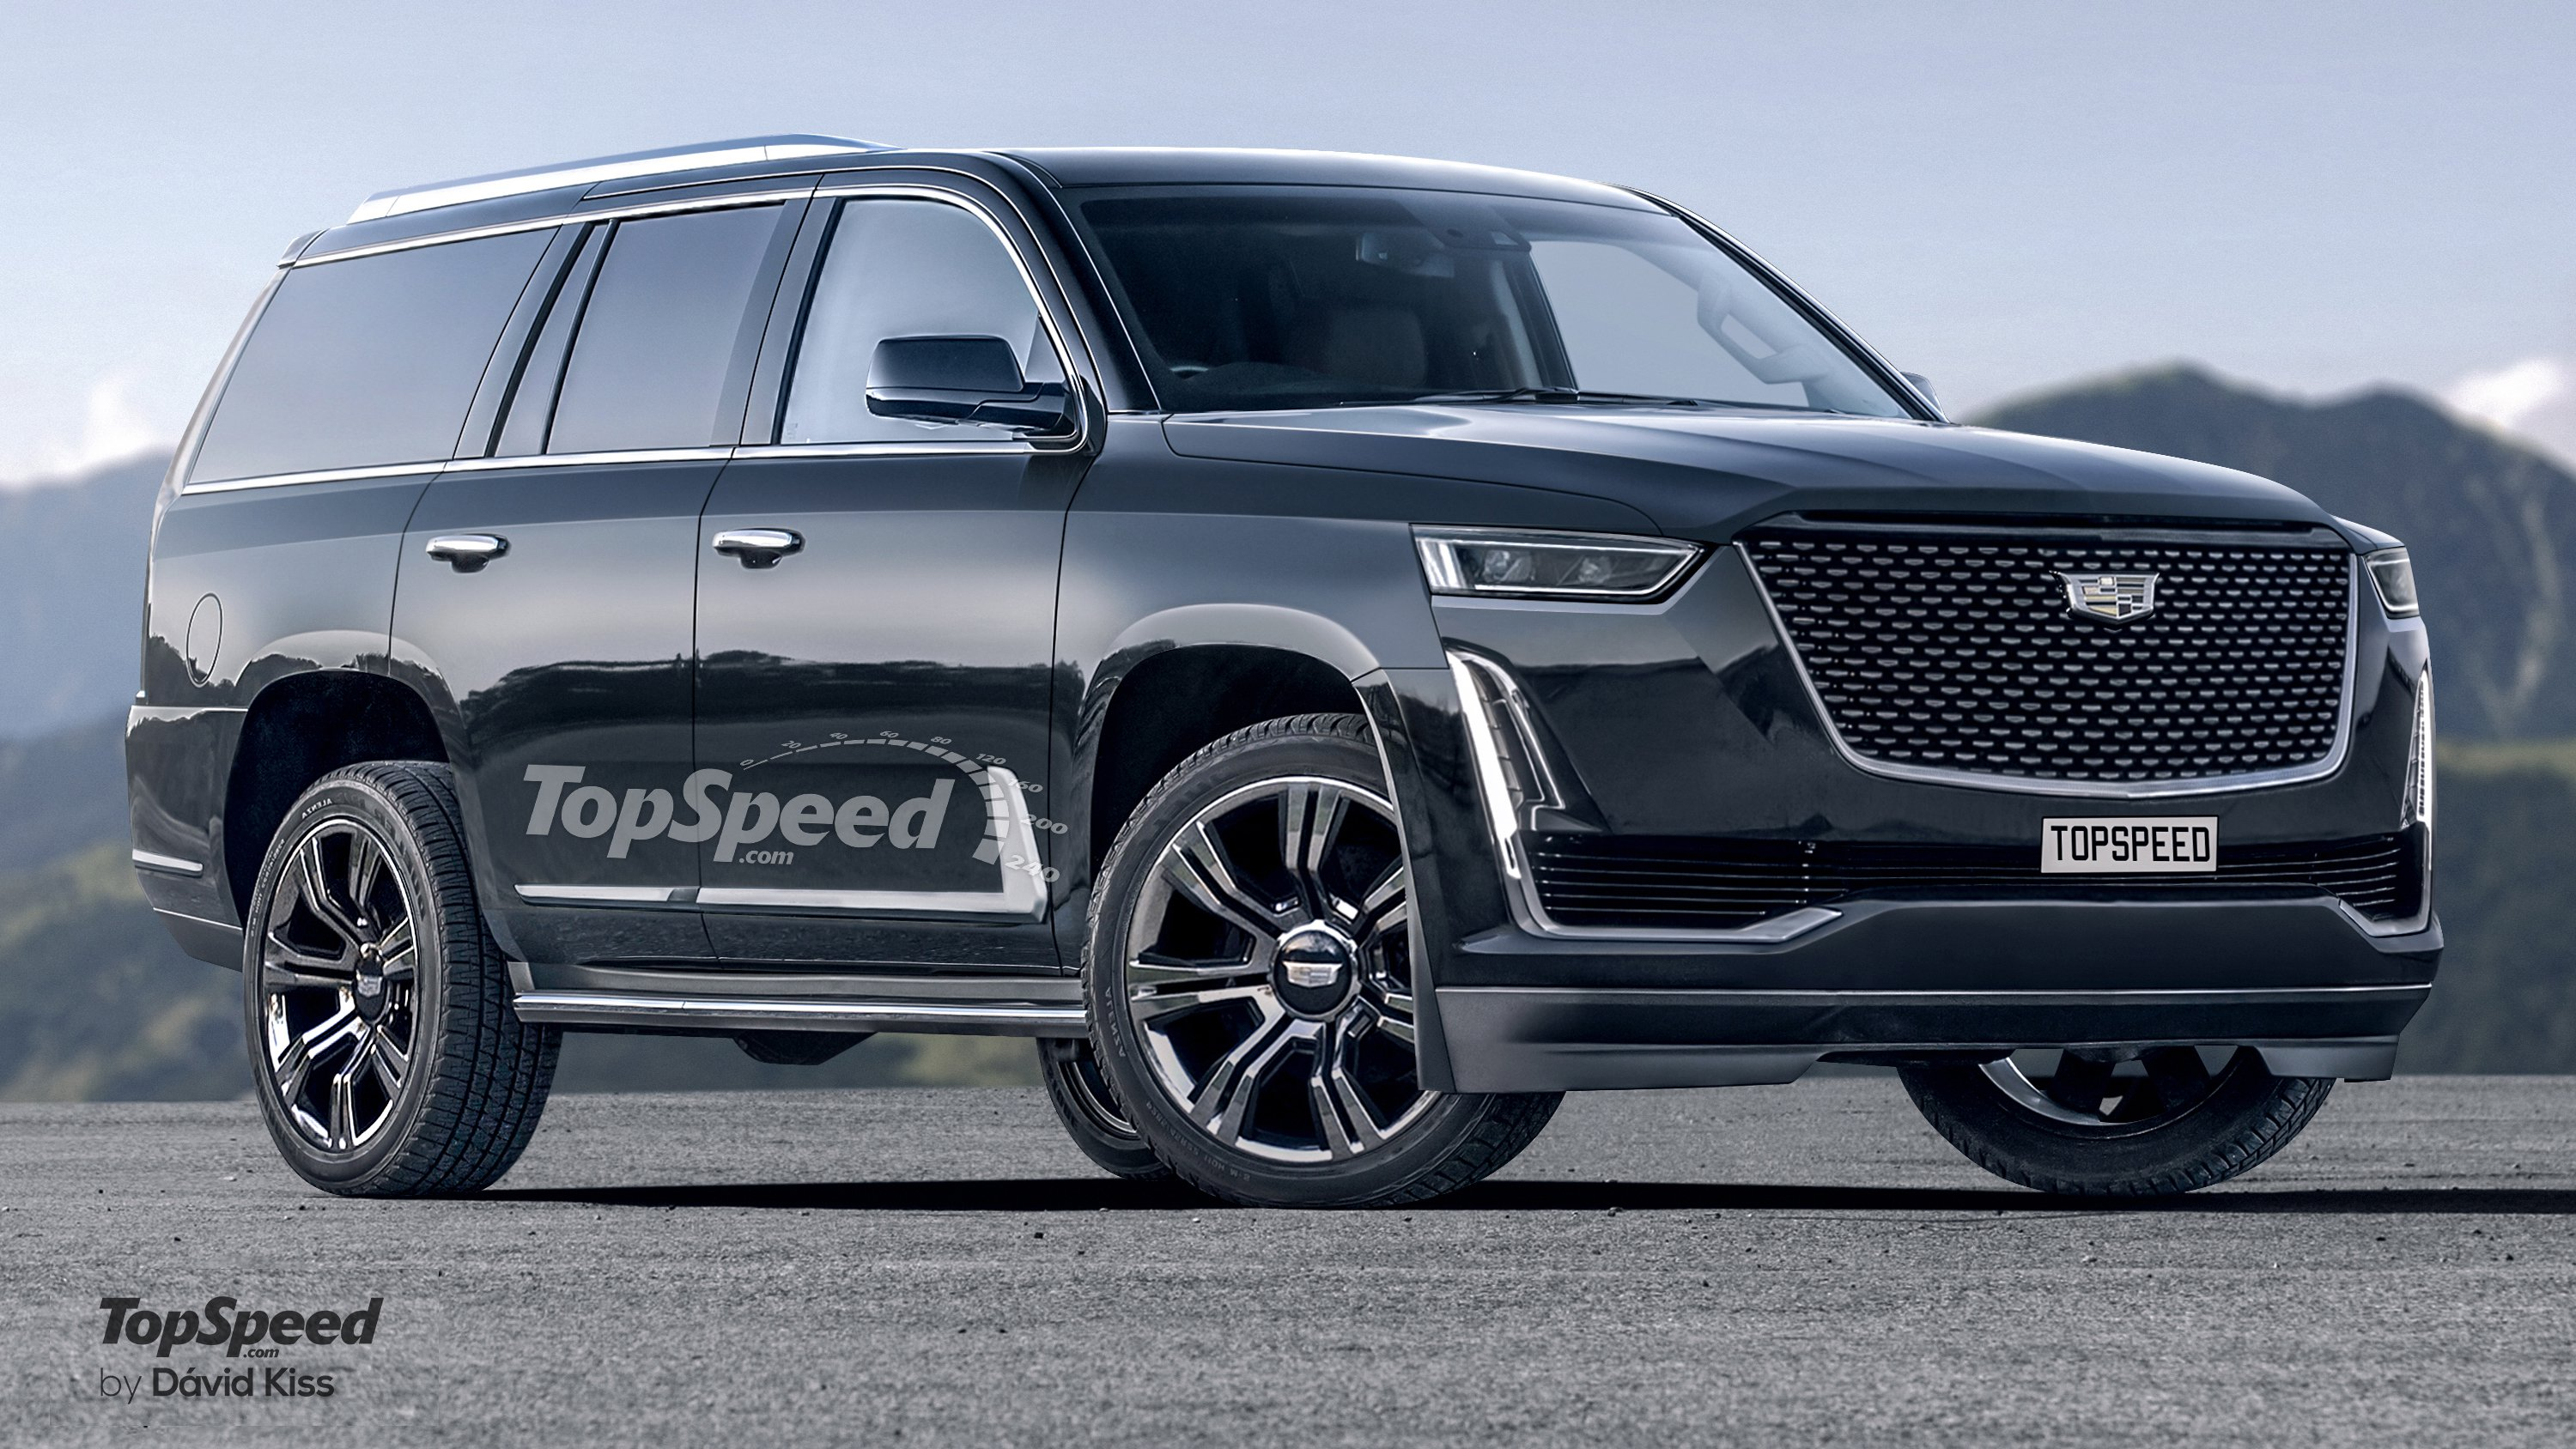 87 New 2020 Cadillac Escalade Images